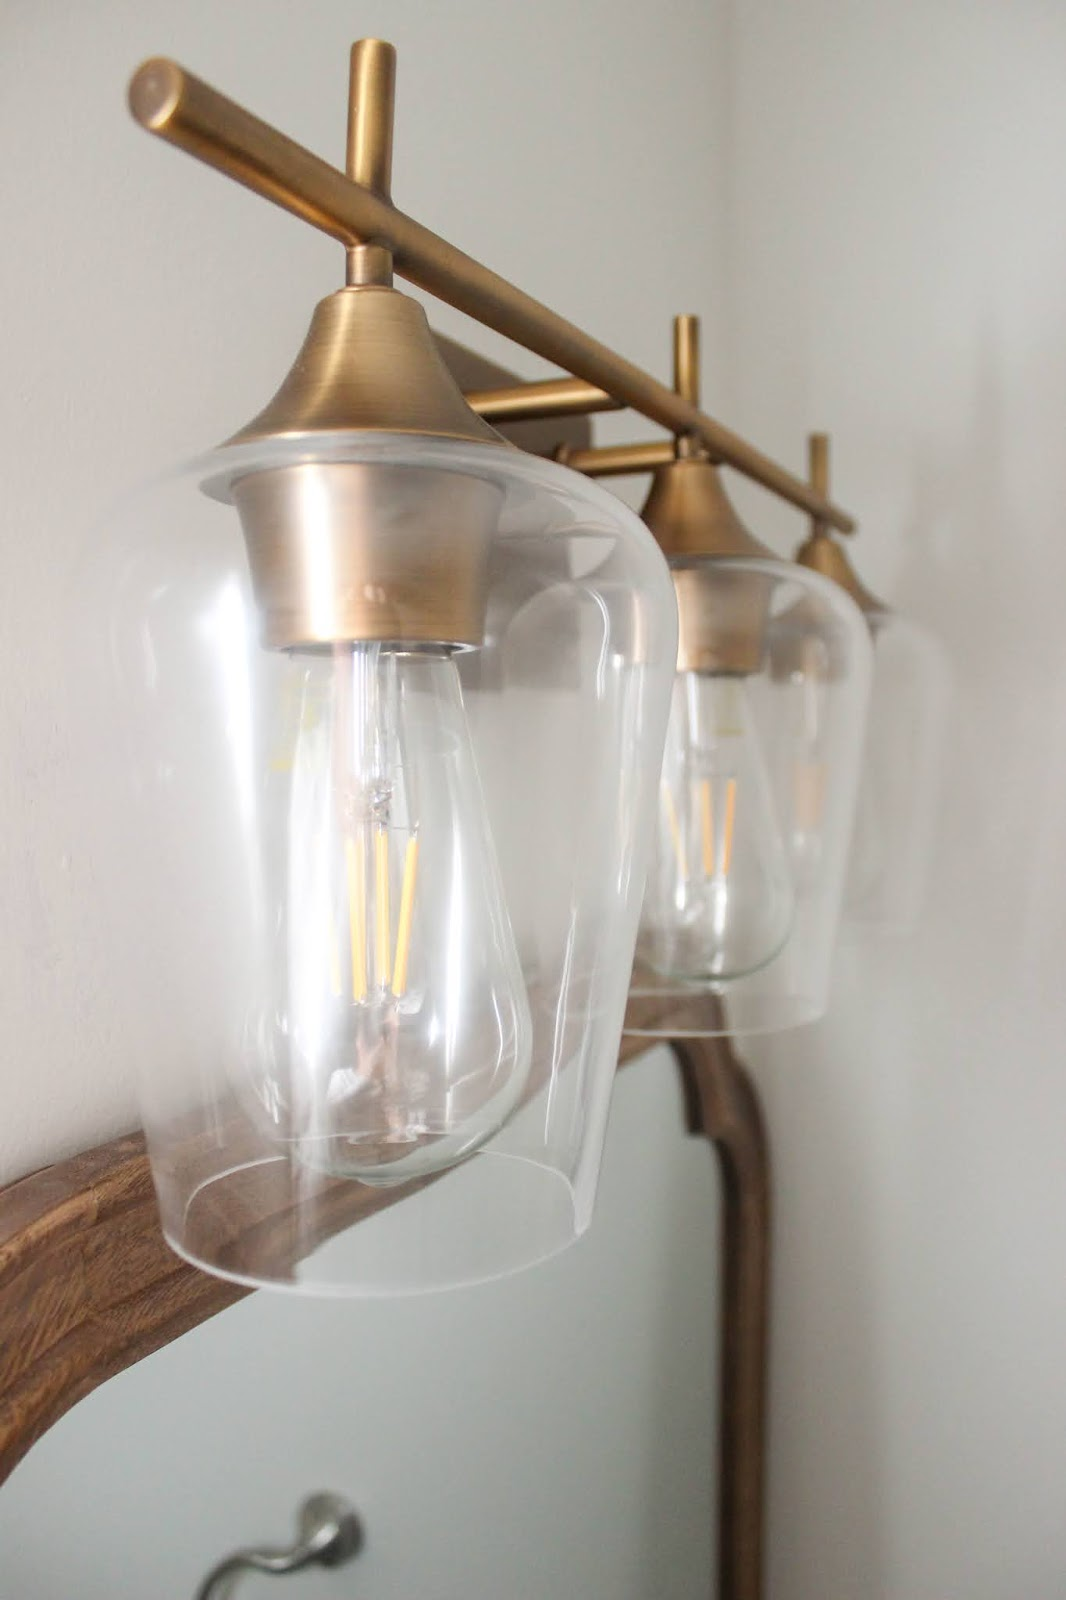 warm brass light fixture